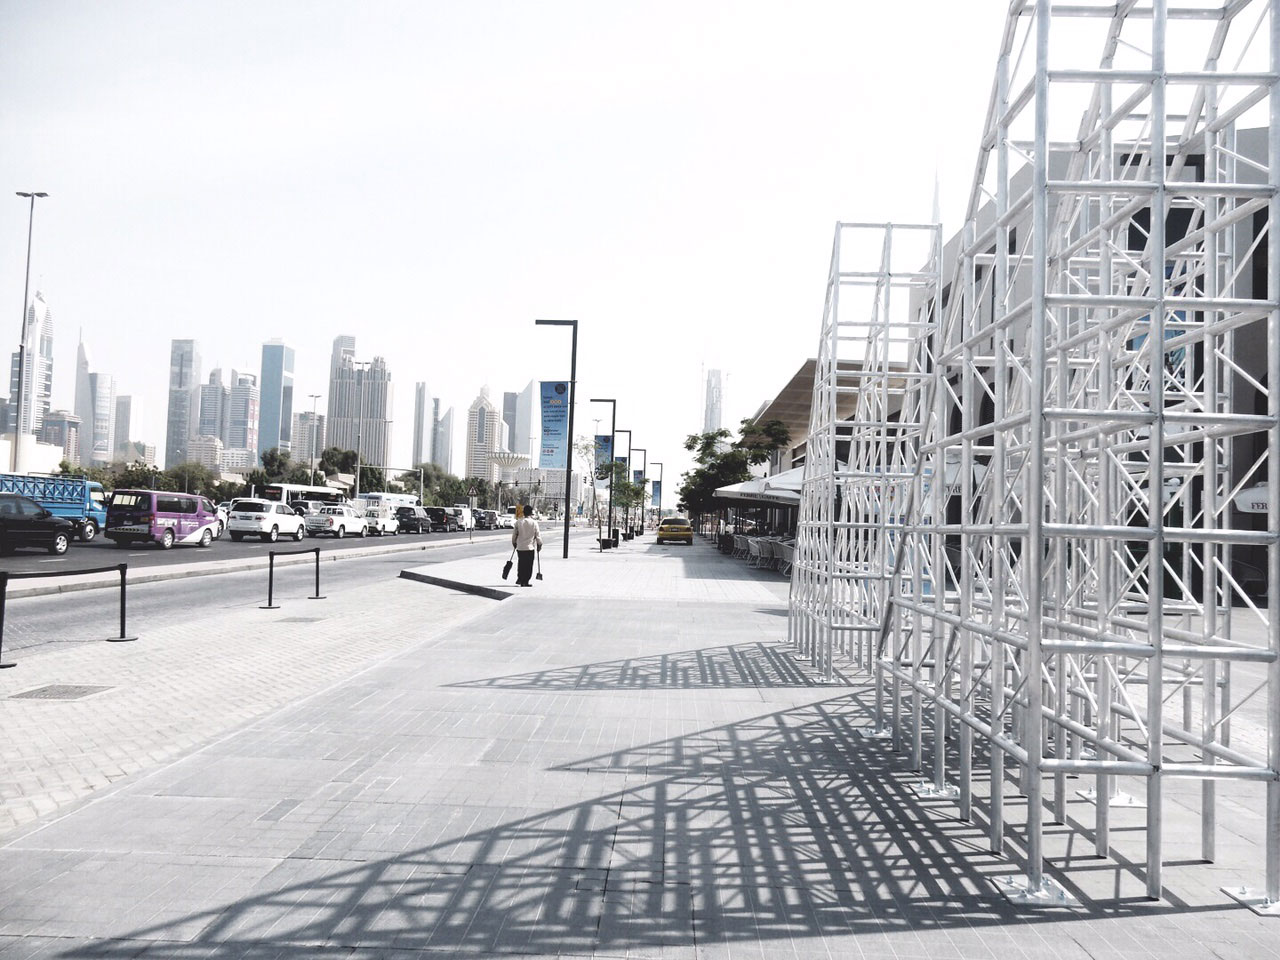 The SCAFFOLDING/ TRUSS.T by Arab conceptual artist Zeinab Al Hashemi, inspired in part by the Emirate's graceful and historic Arabic dhow sailing boats, and part by Dubai's constant evolution through transformative construction.  {TRUSS / trəs/ noun; plural noun: trusses: a framework, typically consisting of rafters, posts, and struts, supporting a roof, bridge, or other structure.}